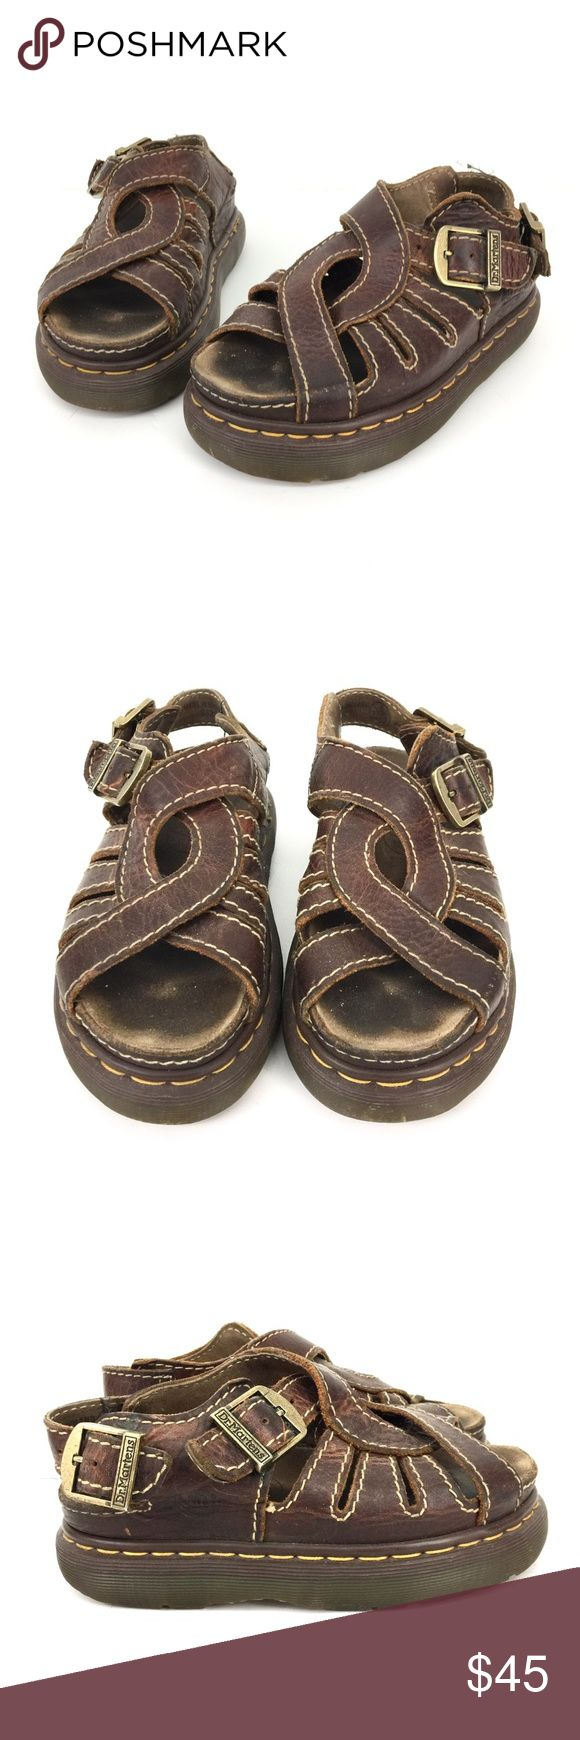 Dr. Marten sandals UK 4/ US 5 MADE IN ENGLAND UK 4 /US 5. Original Vintage MADE IN ENGLAND. Women's. Amazing condition. See photos. Dr. Martens Shoes Sandals